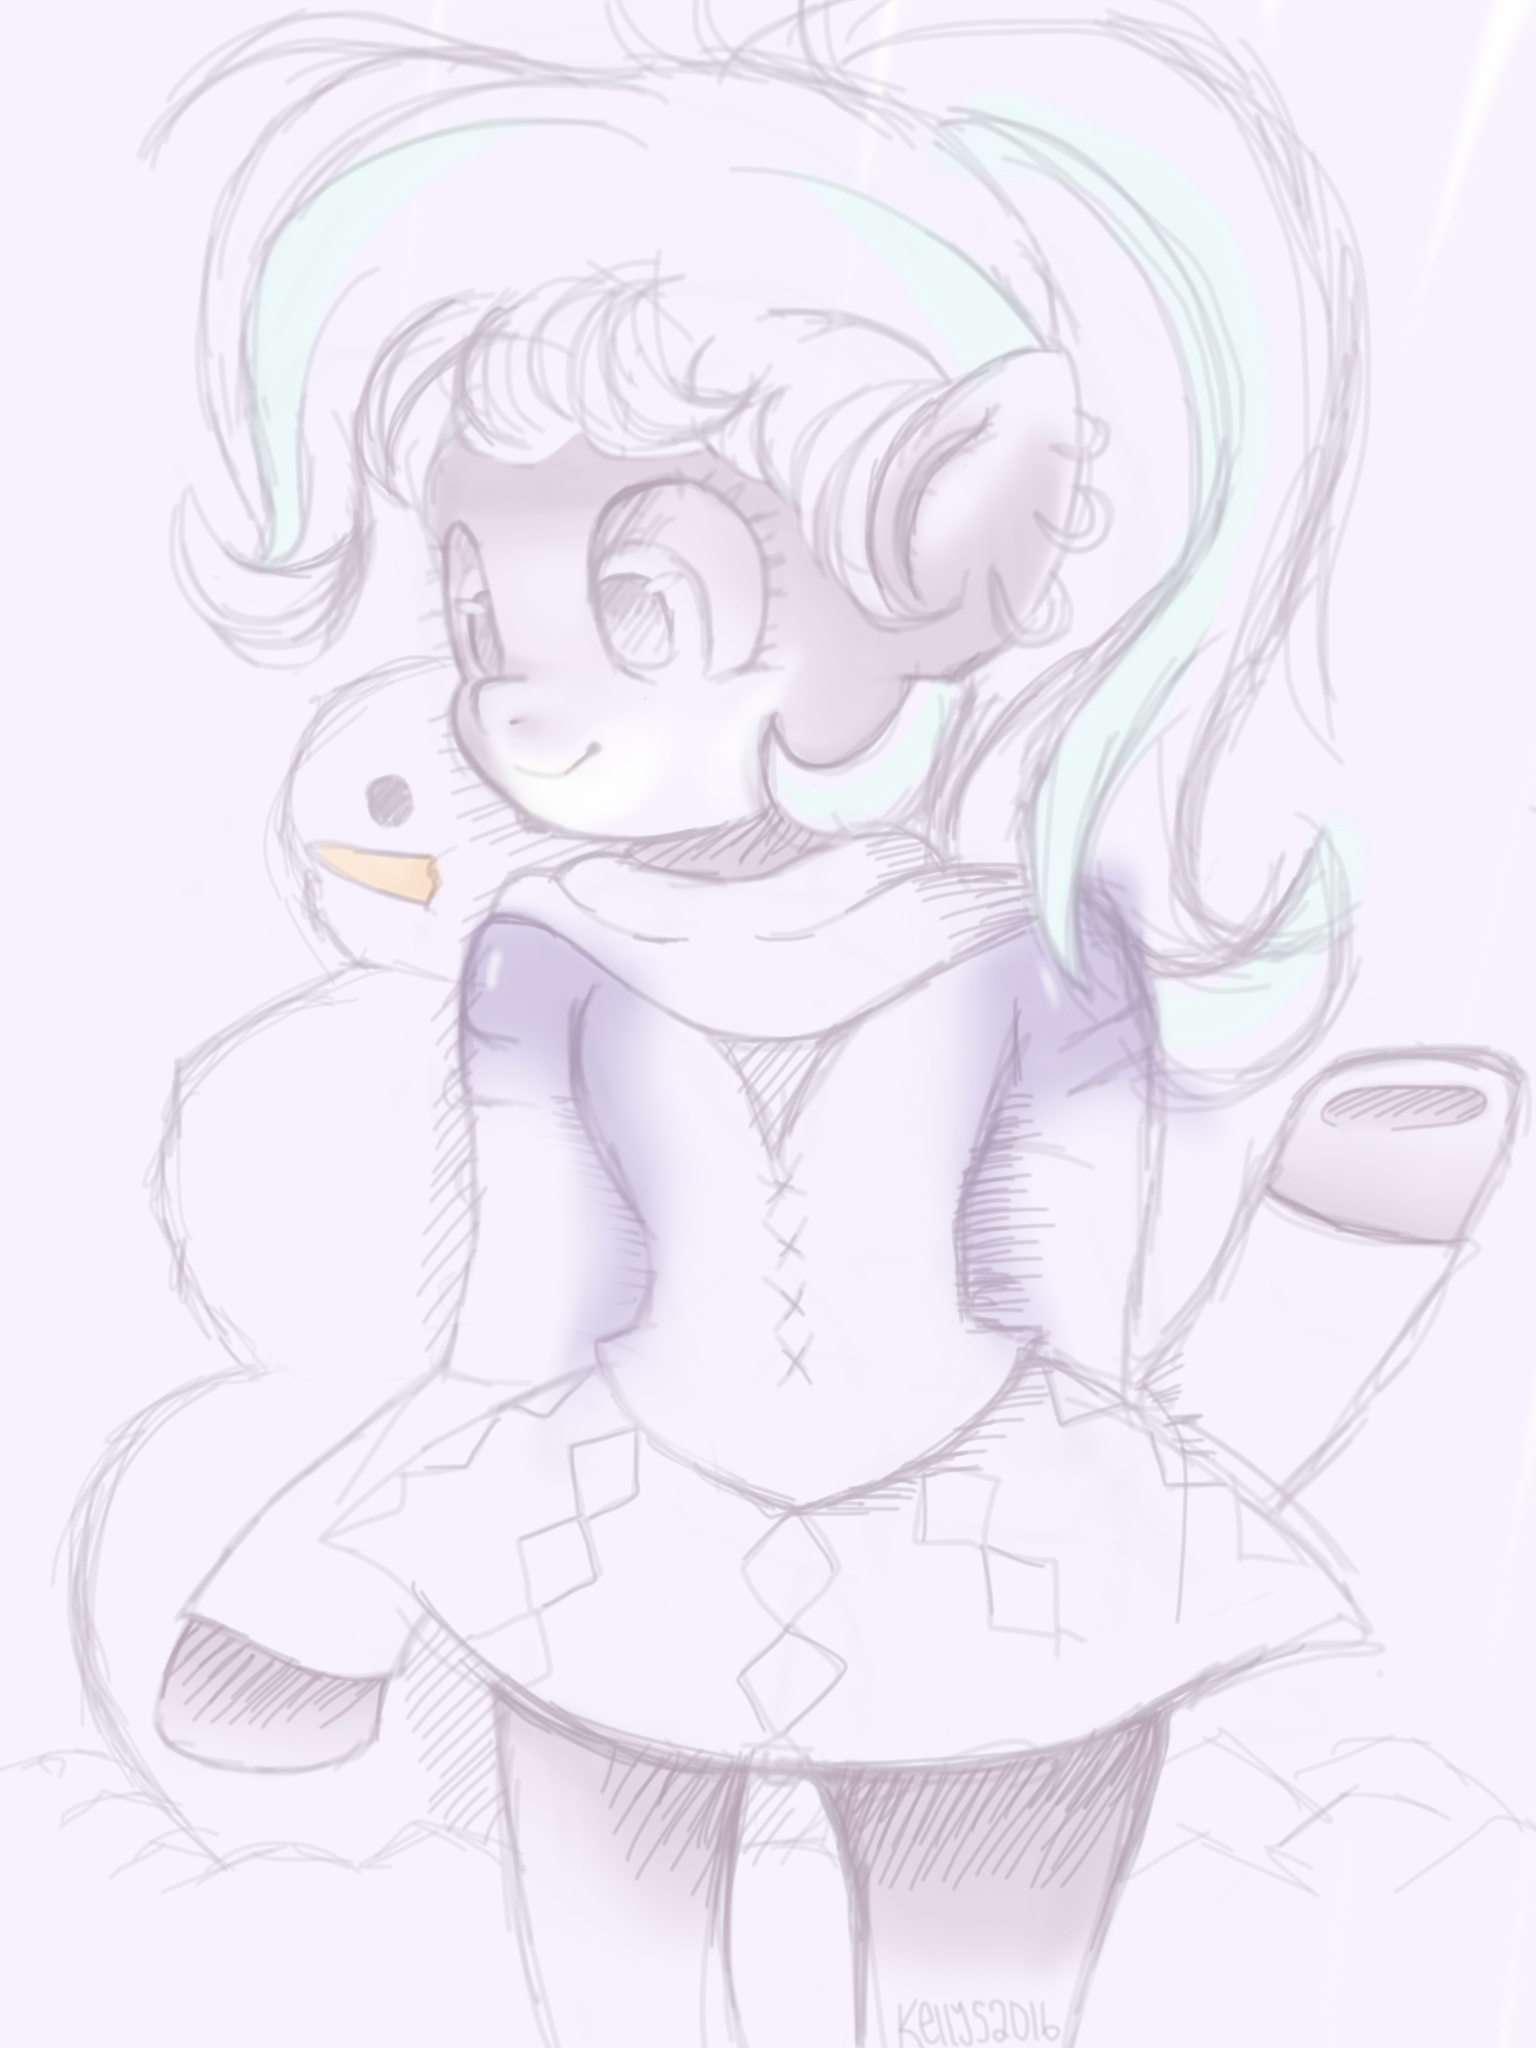 Here we have a crappy sketch of Starlight Glimmer by xKellySDrawsx